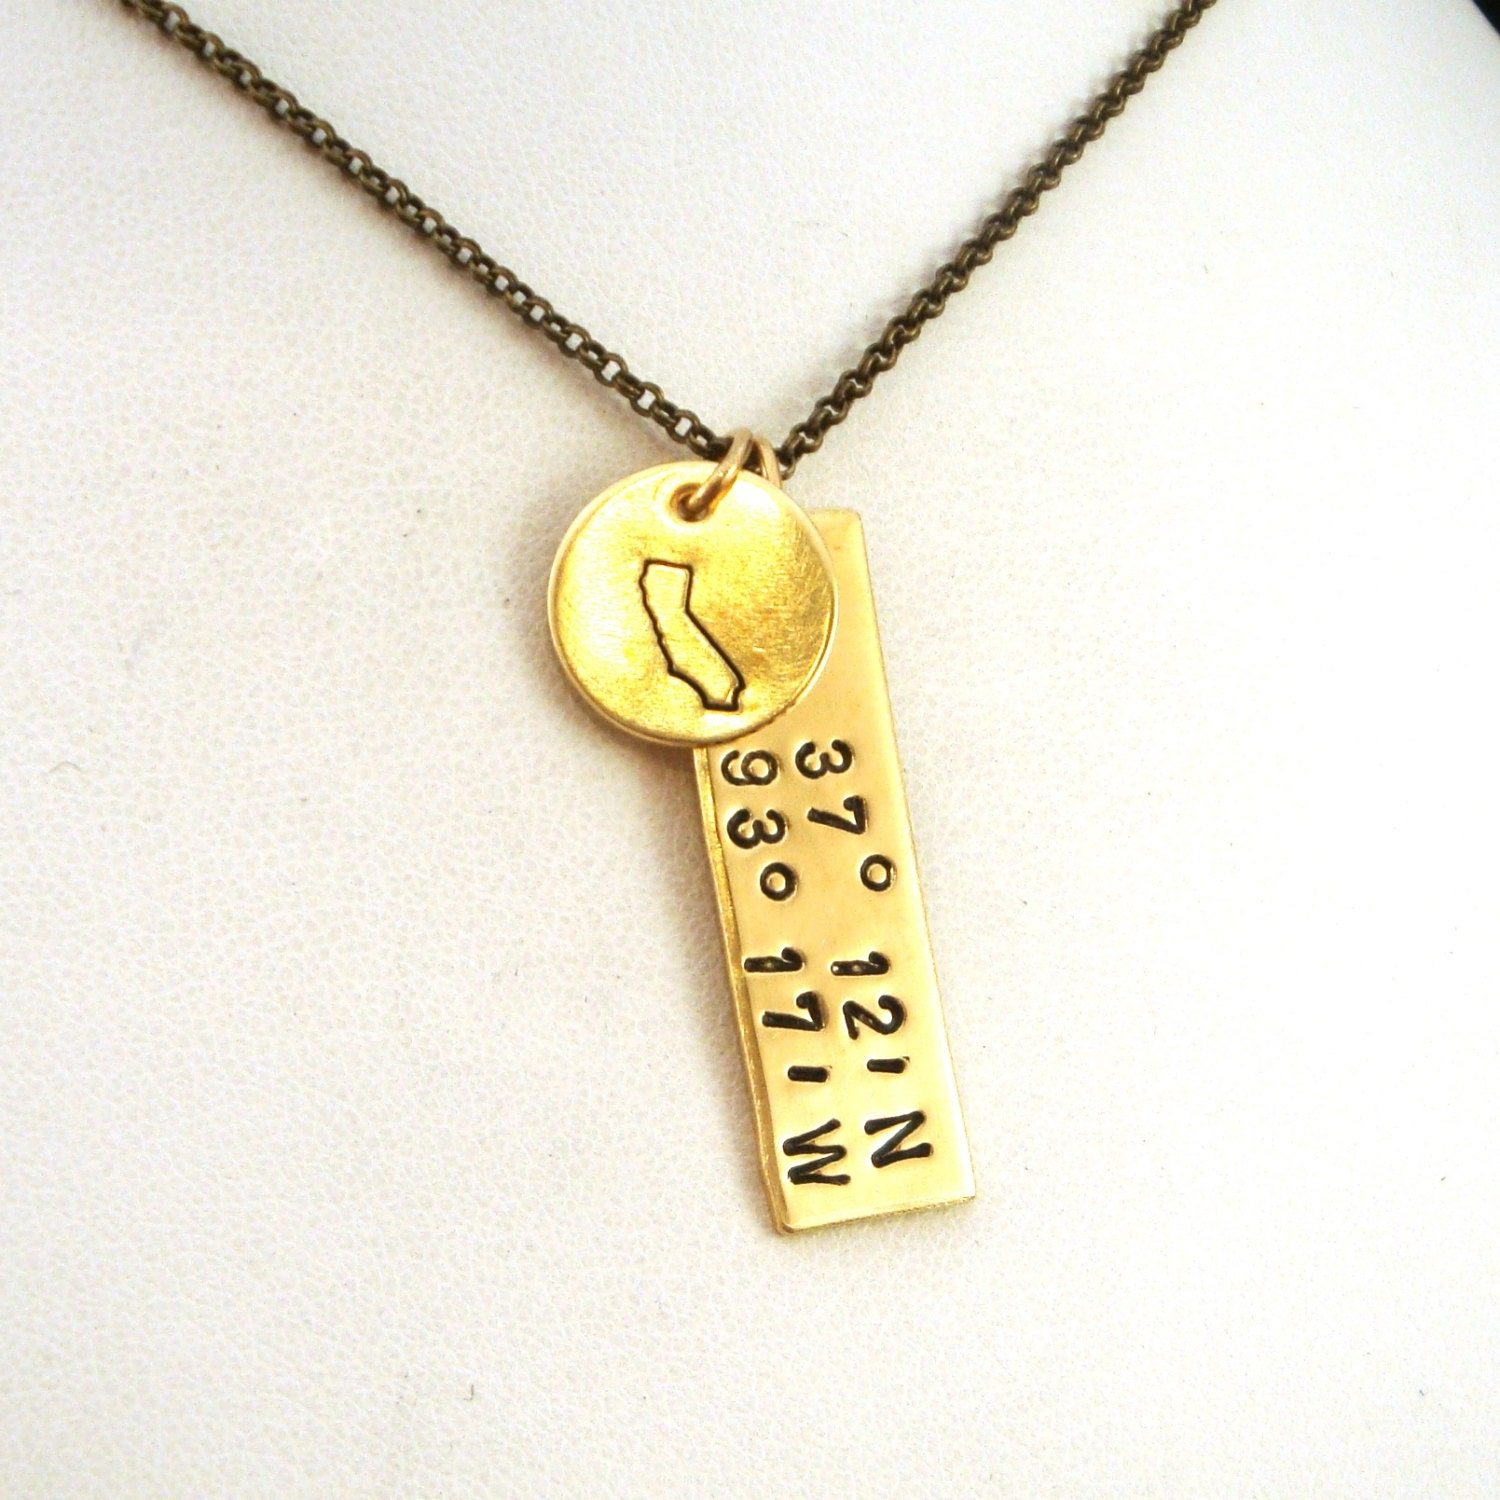 Gps Coordinates Necklace